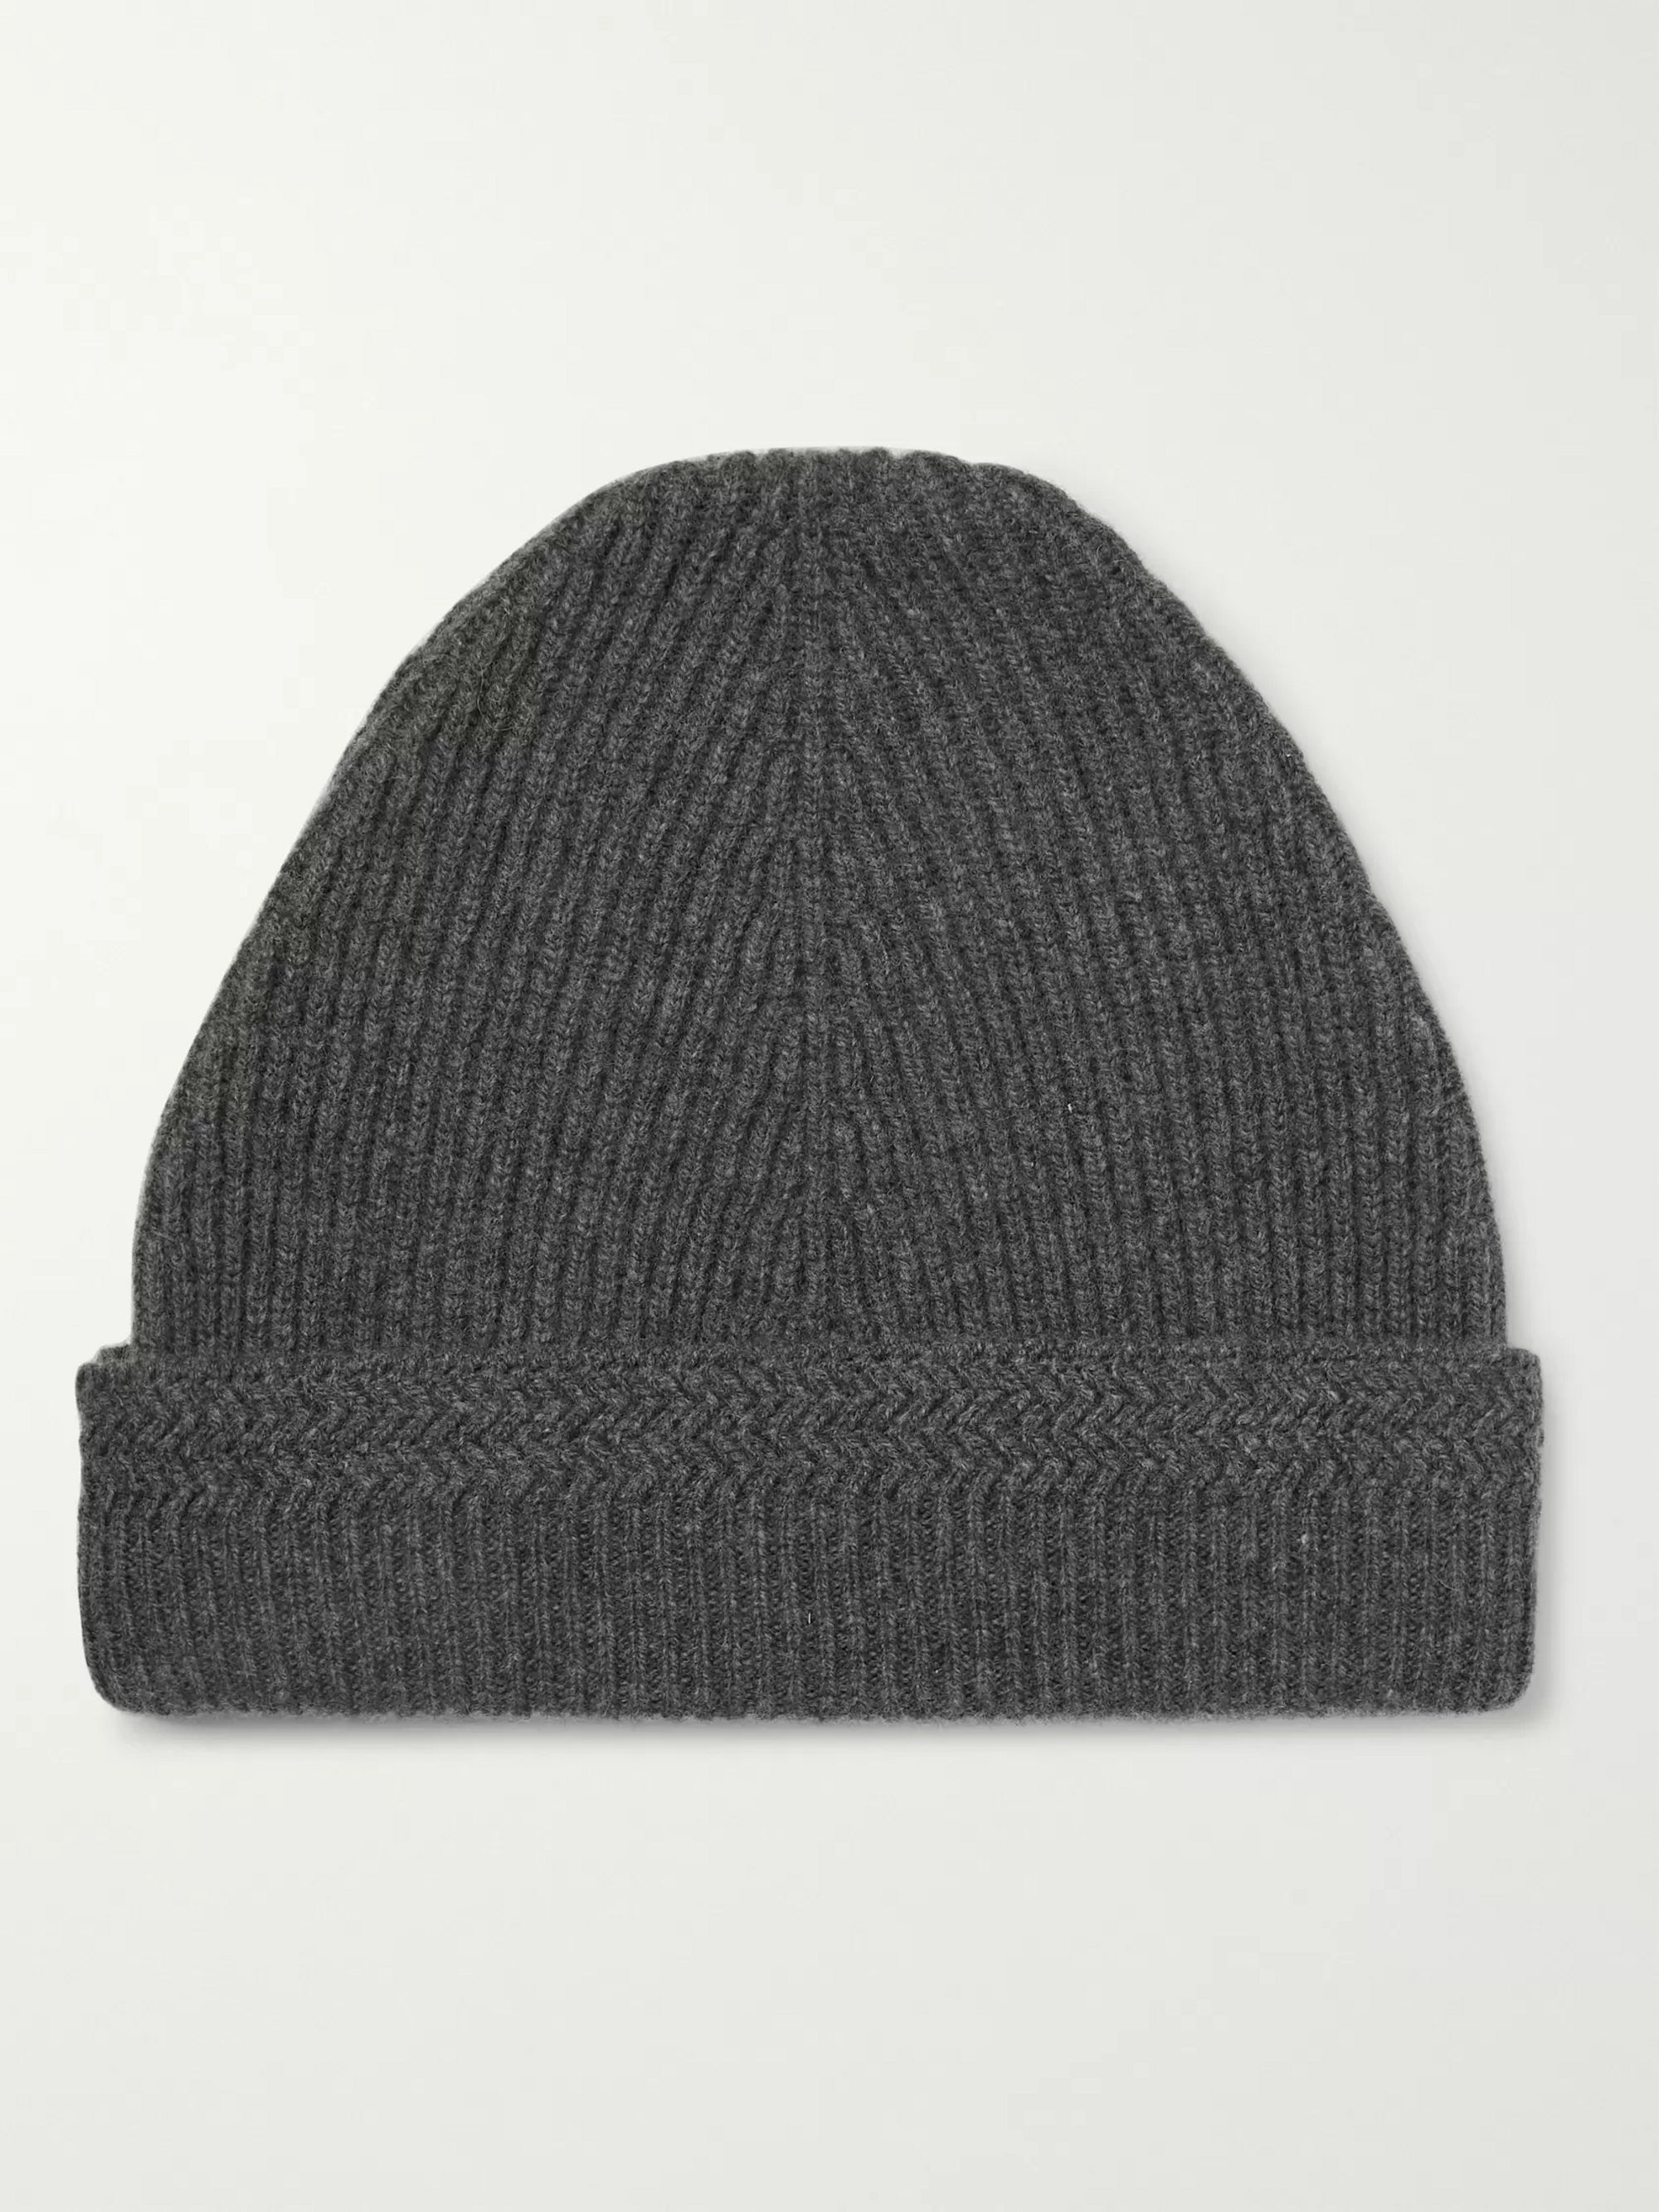 Maison Margiela Ribbed Cashmere and Wool-Blend Beanie